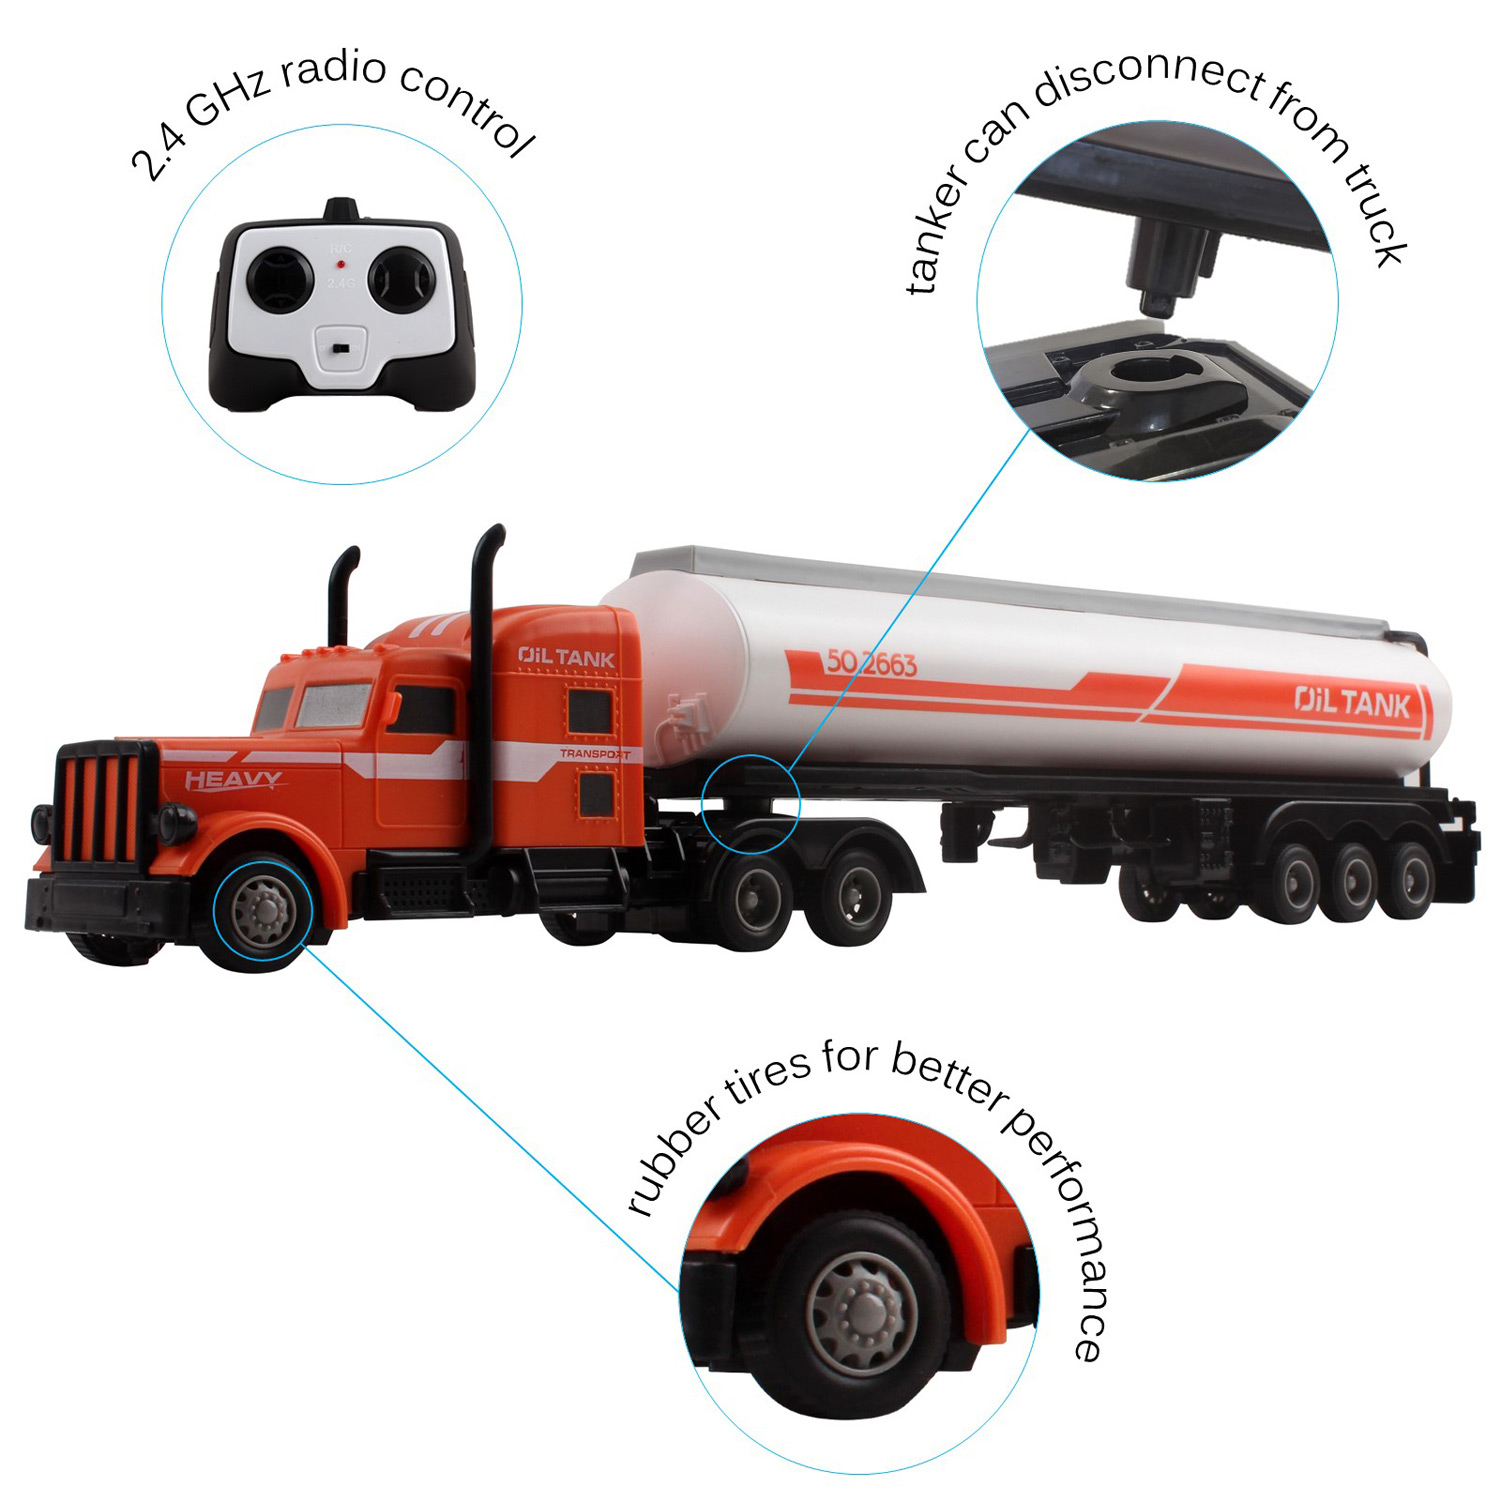 Large RC Toy Semi Truck Fuel Trailer 24Ghz Fast Speed 120 Scale Electric Oil Hauler Rechargeable Remote Control Kids Big Rig Carrier Transporter Vehicle Full Cargo Perfect Childrens Toy Gift